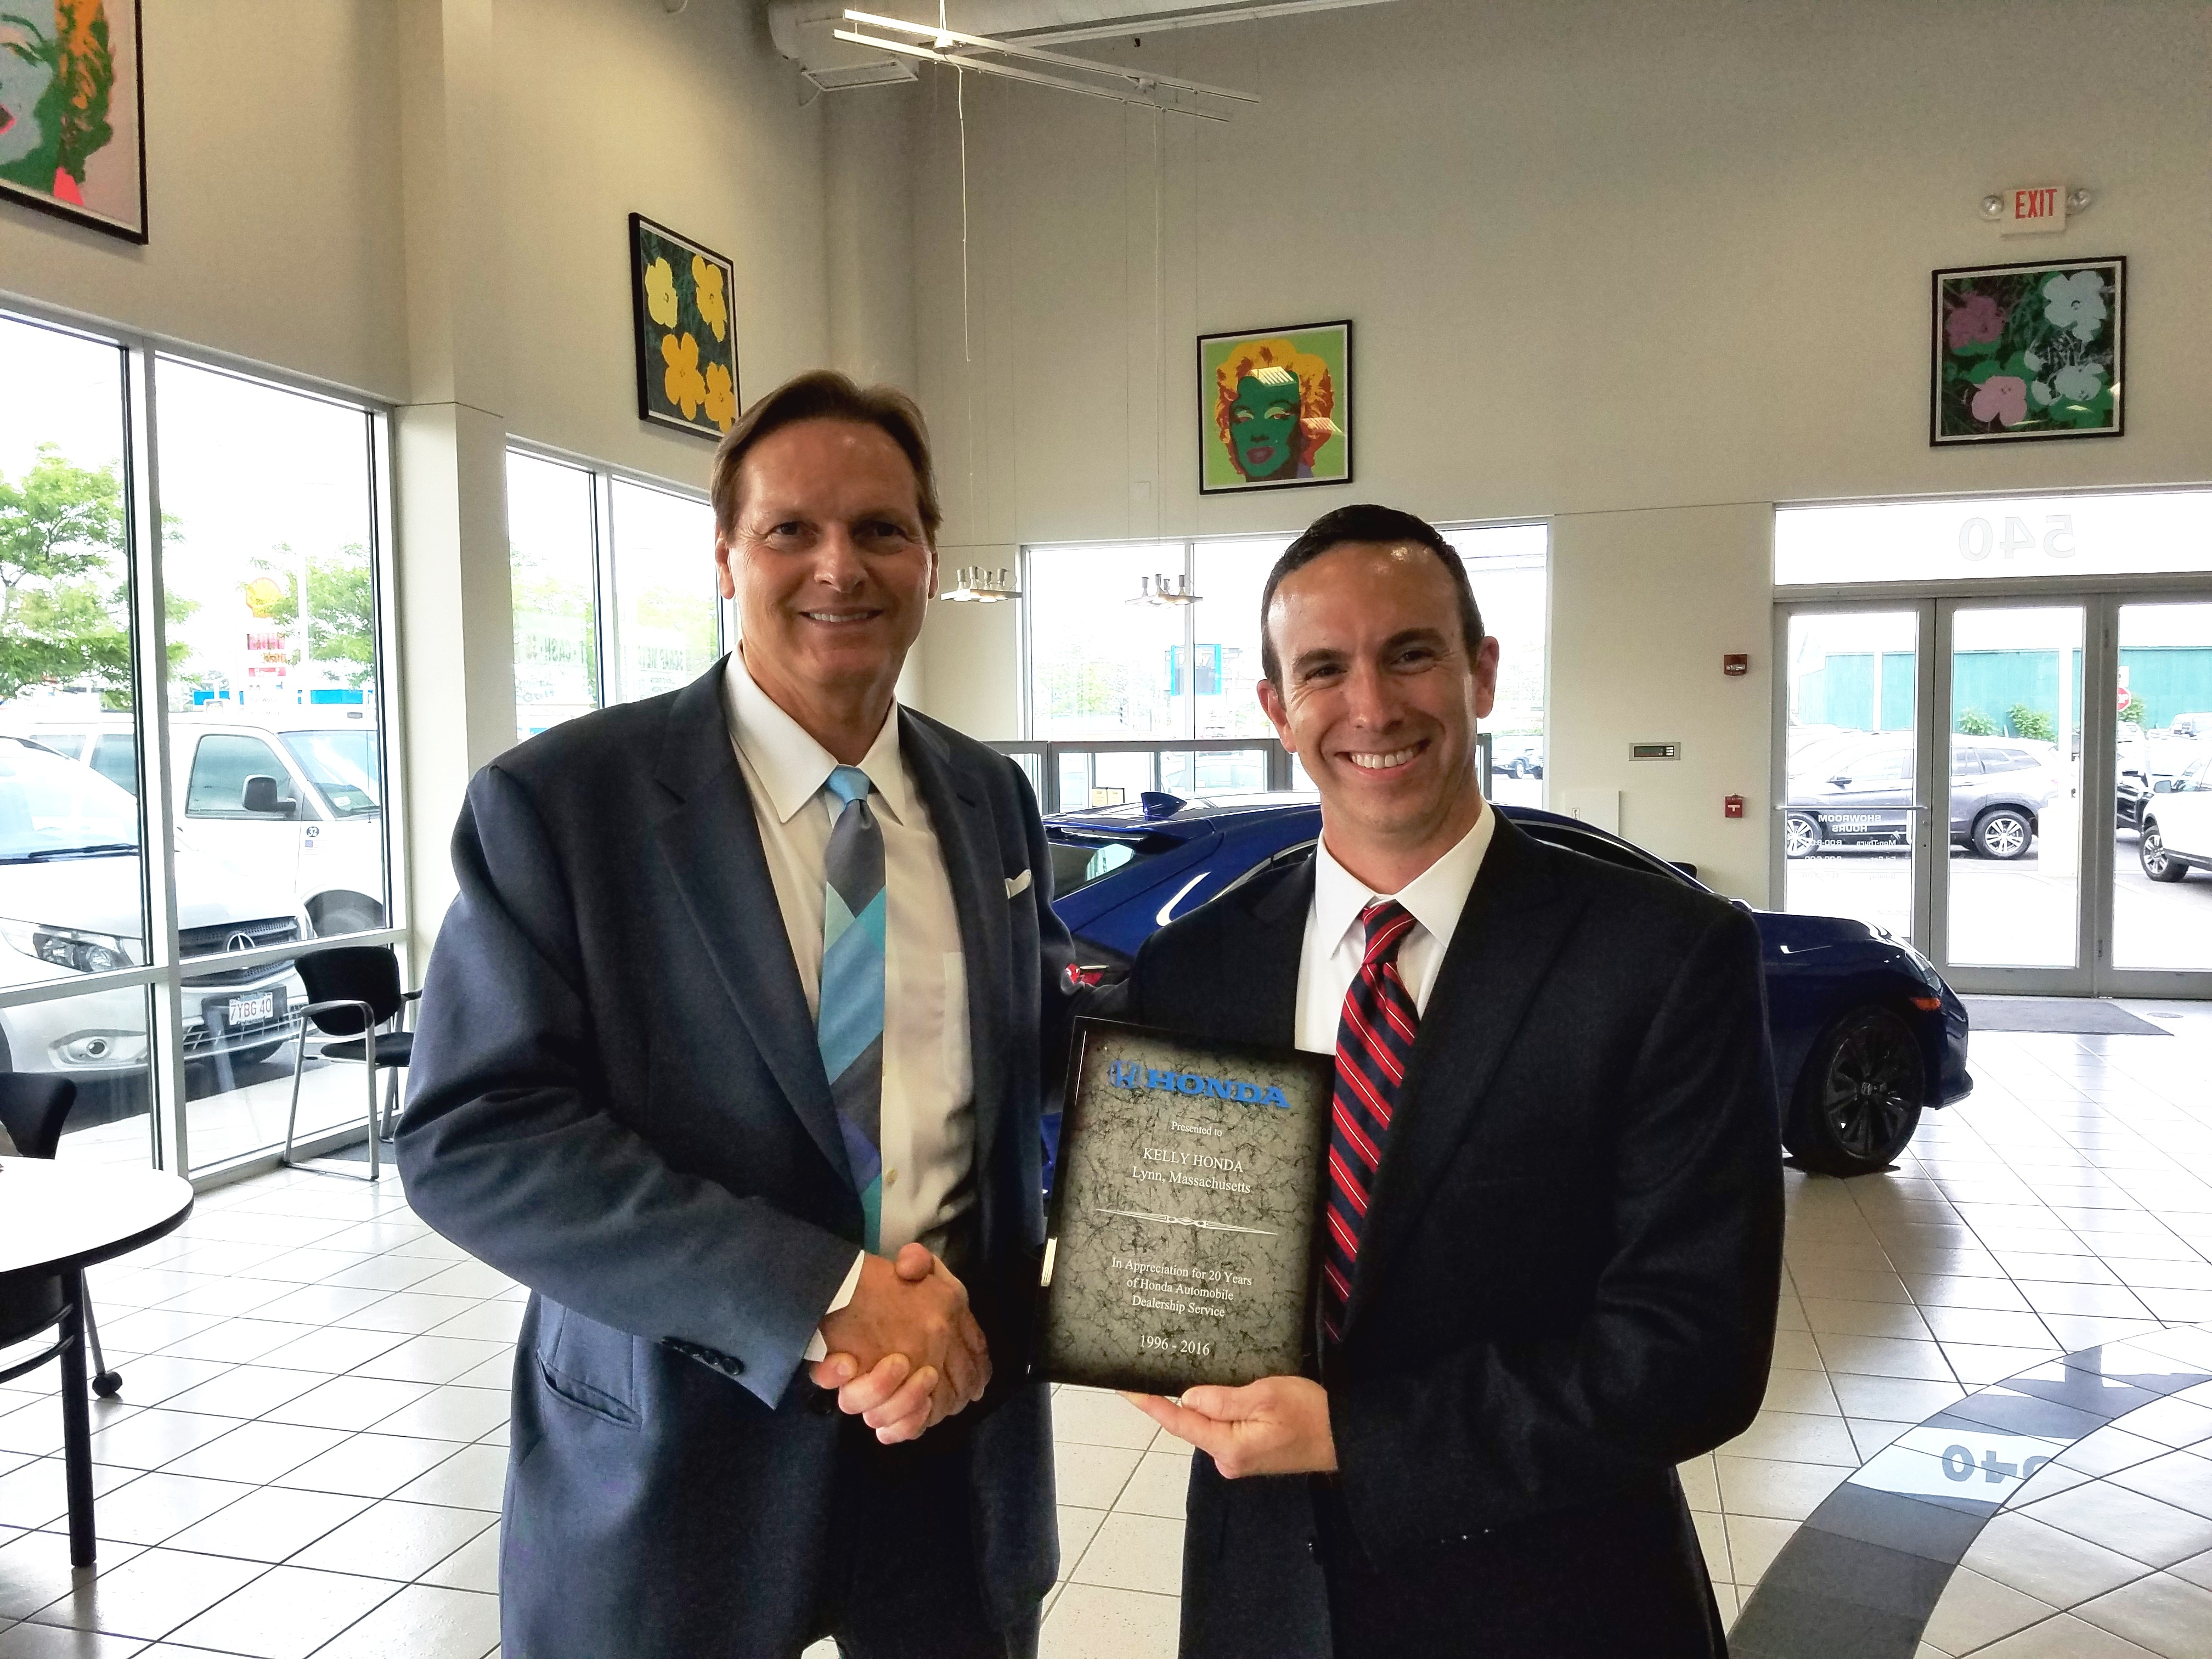 Elegant Kelly Honda In Lynn, MA Is Proud To Have Helped Massachusetts Automotive  Shoppers With Their Automotive Needs Since 1996; While The Kelly Automotive  Group ...